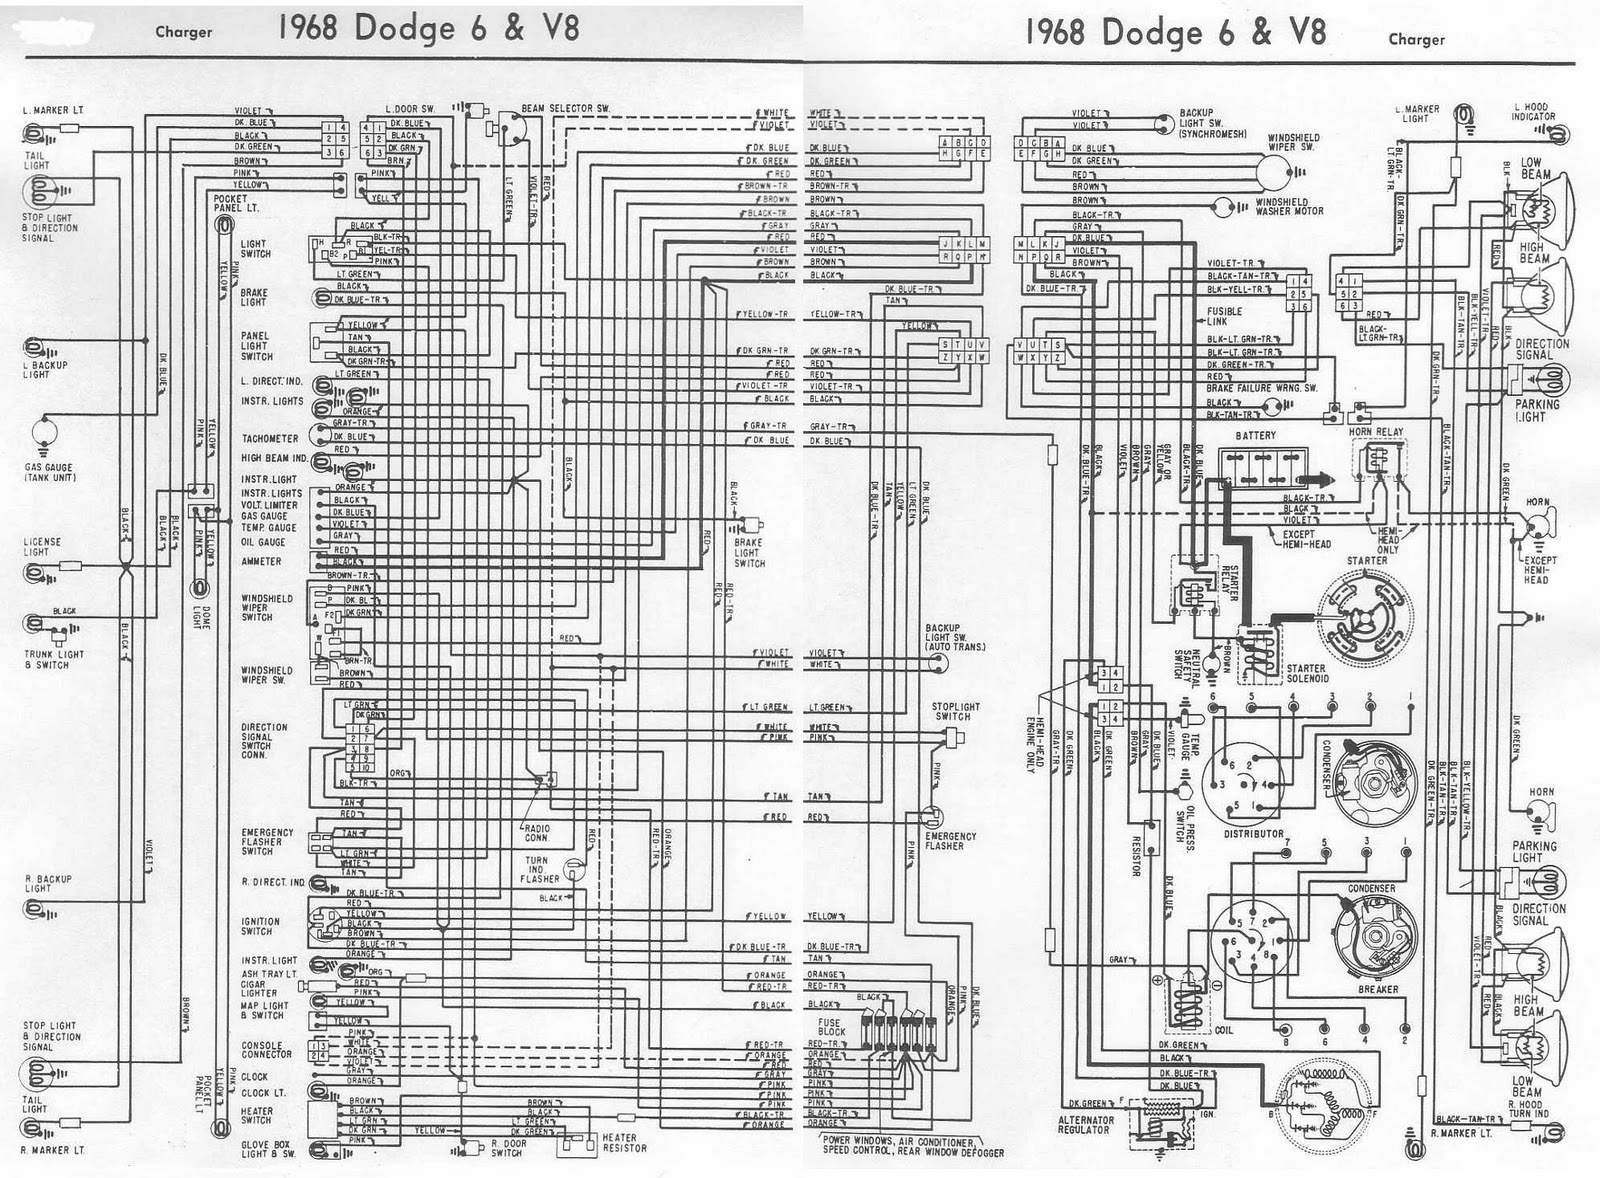 Dodge+Charger+1968+6+and+V8+Complete+Electrical+Wiring+Diagram dodge wiring diagrams 1970 dodge challenger wiring diagram \u2022 free 2008 dodge charger wiring harness at gsmx.co